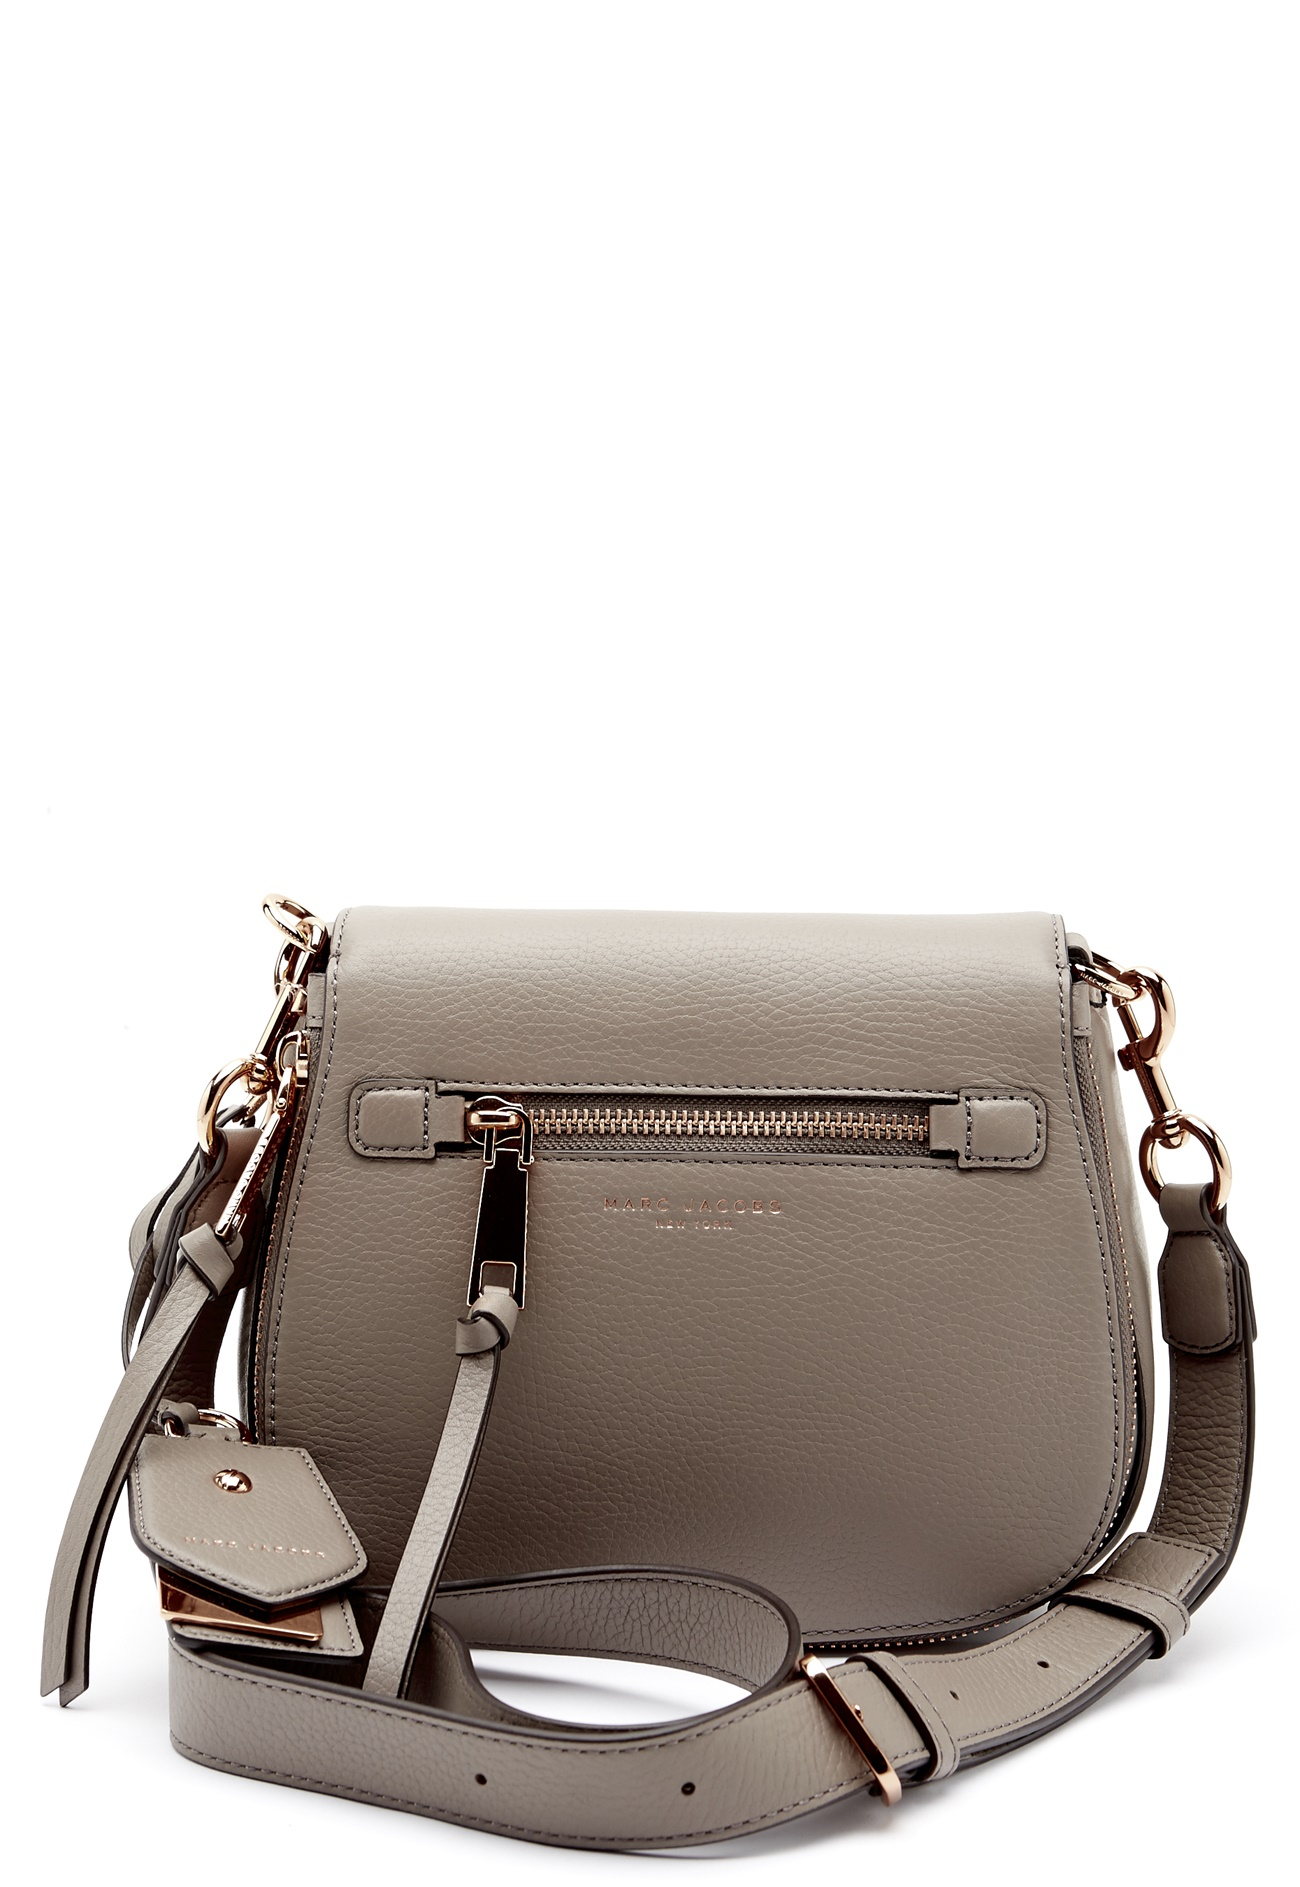 Marc Jacobs Väskor Tradera : Marc jacobs small nomad crossbody bag mink bubbleroom